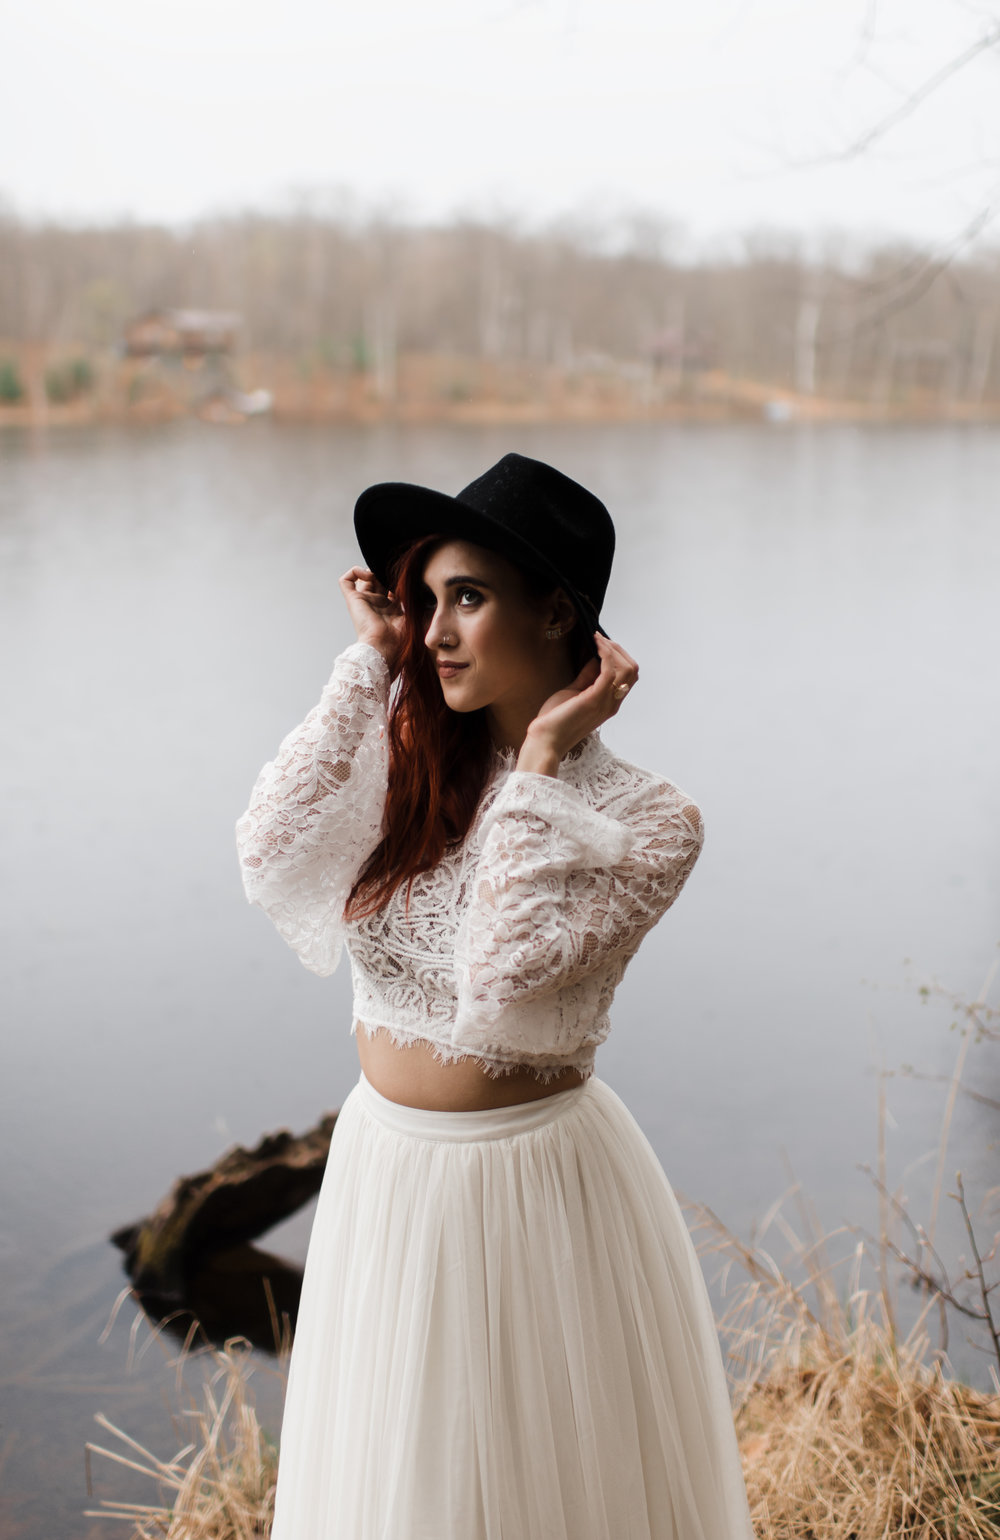 Bride in lace and beaded crop top and flowing skirt wears black fedora playfully.